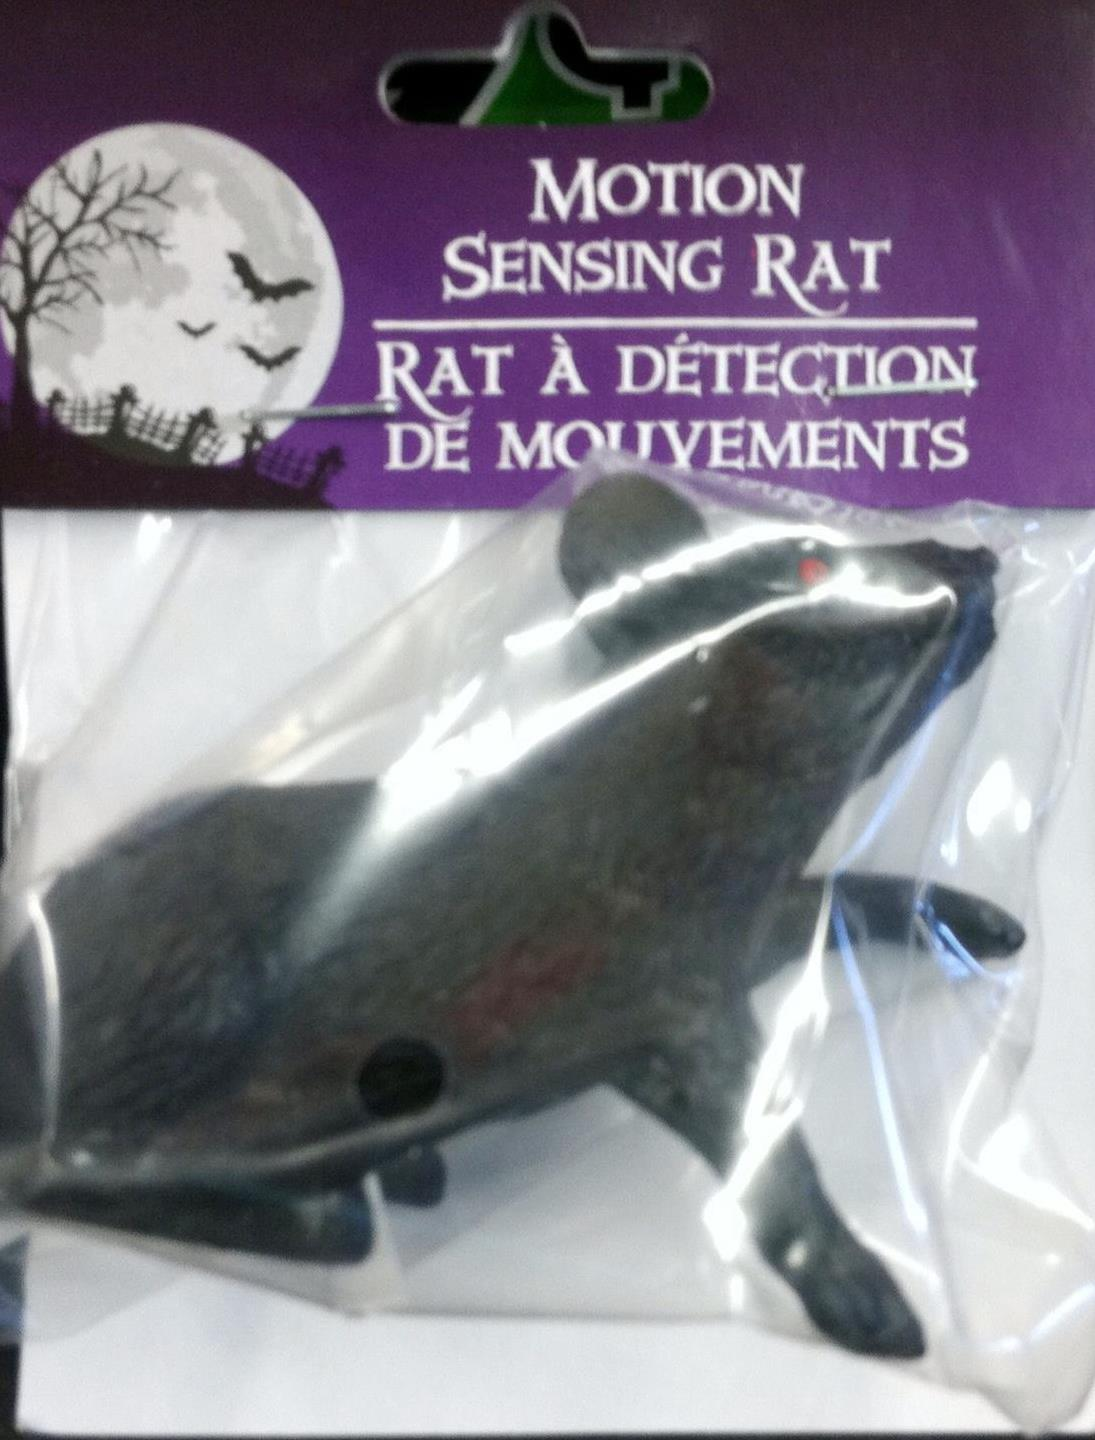 http://www.dollartree.com/catalog/search.cmd?form_state=searchForm&keyword=rat